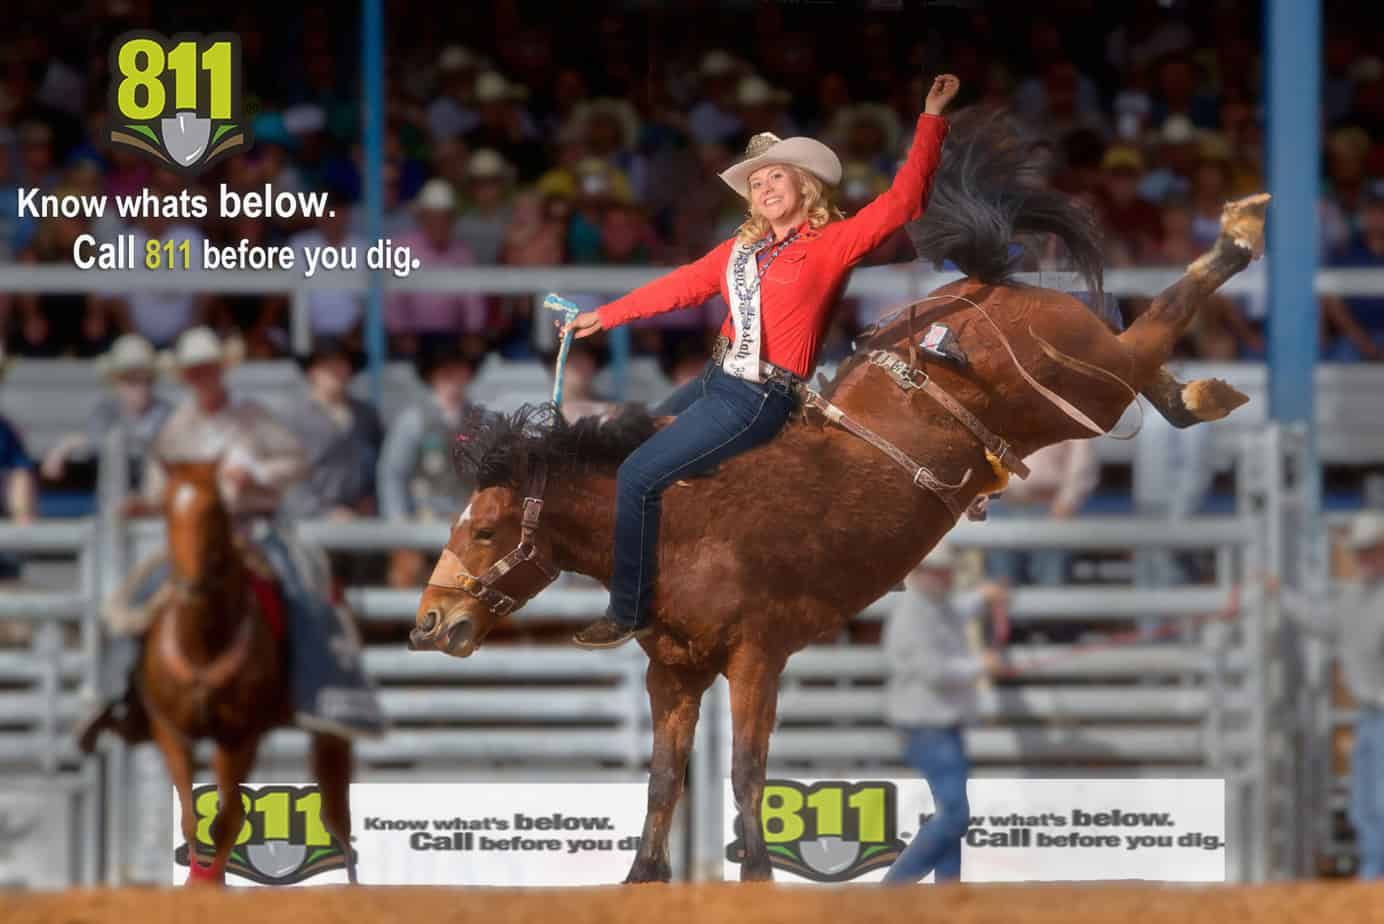 Rodeo Queen on bucking bronco for Washington 811 photo activation